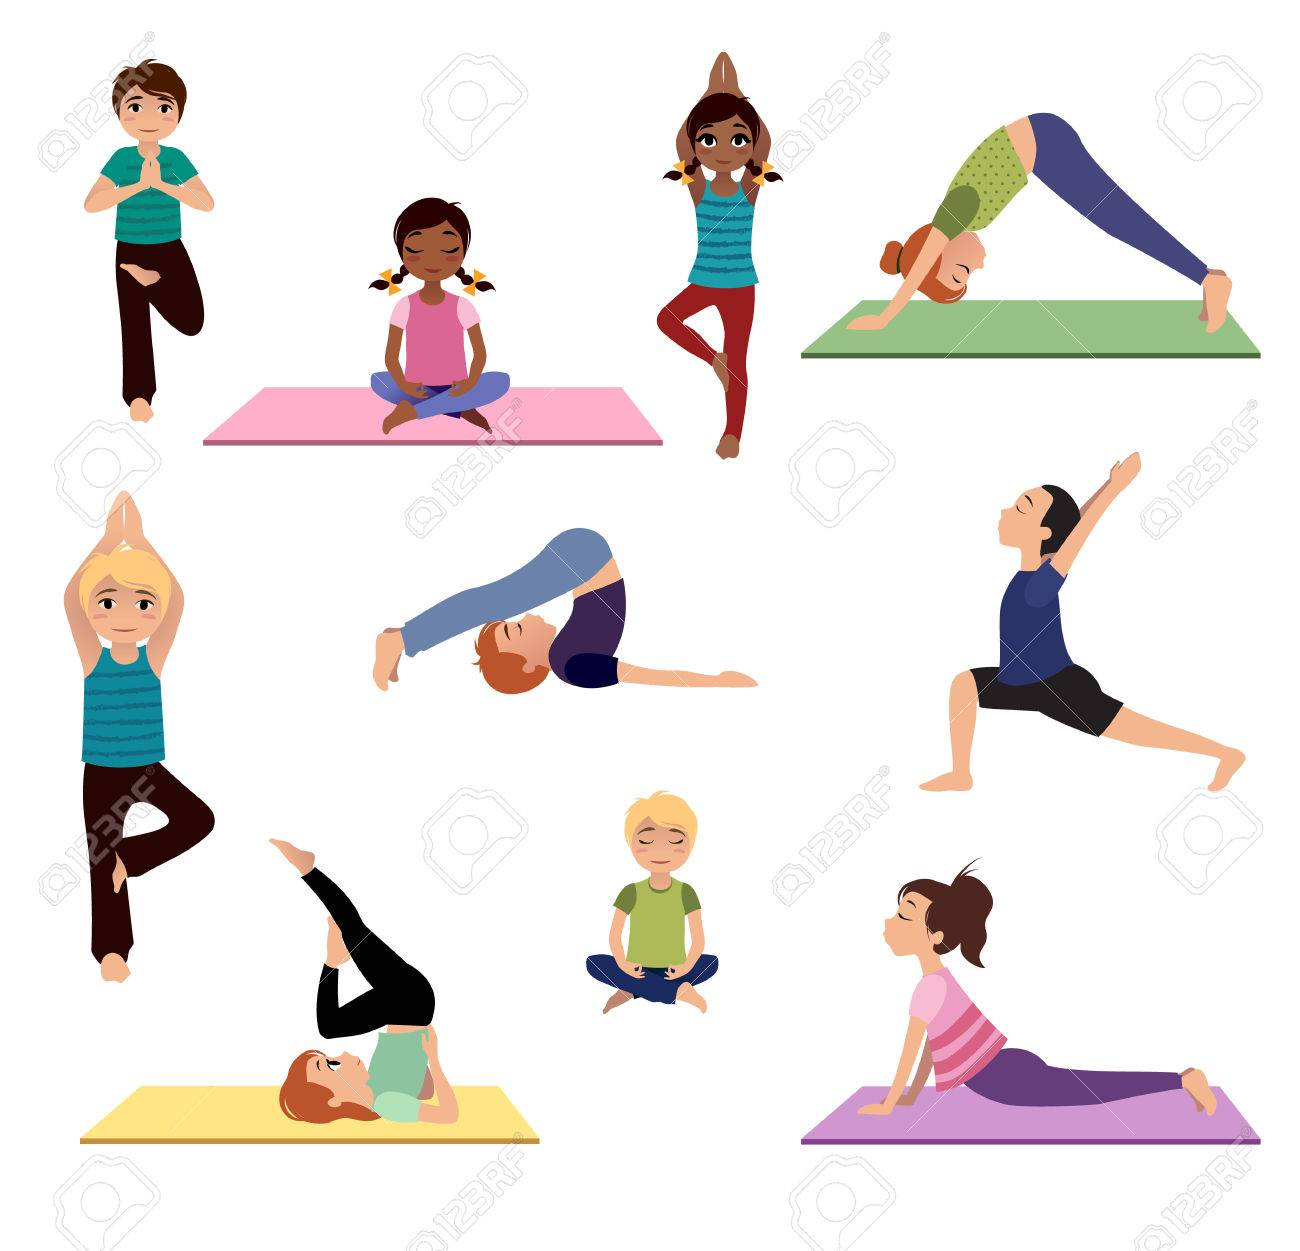 Yoga For Kids Asanas Set Of Yoga Poses And Healthy Lifestyle Royalty Free Cliparts Vectors And Stock Illustration Image 68606137